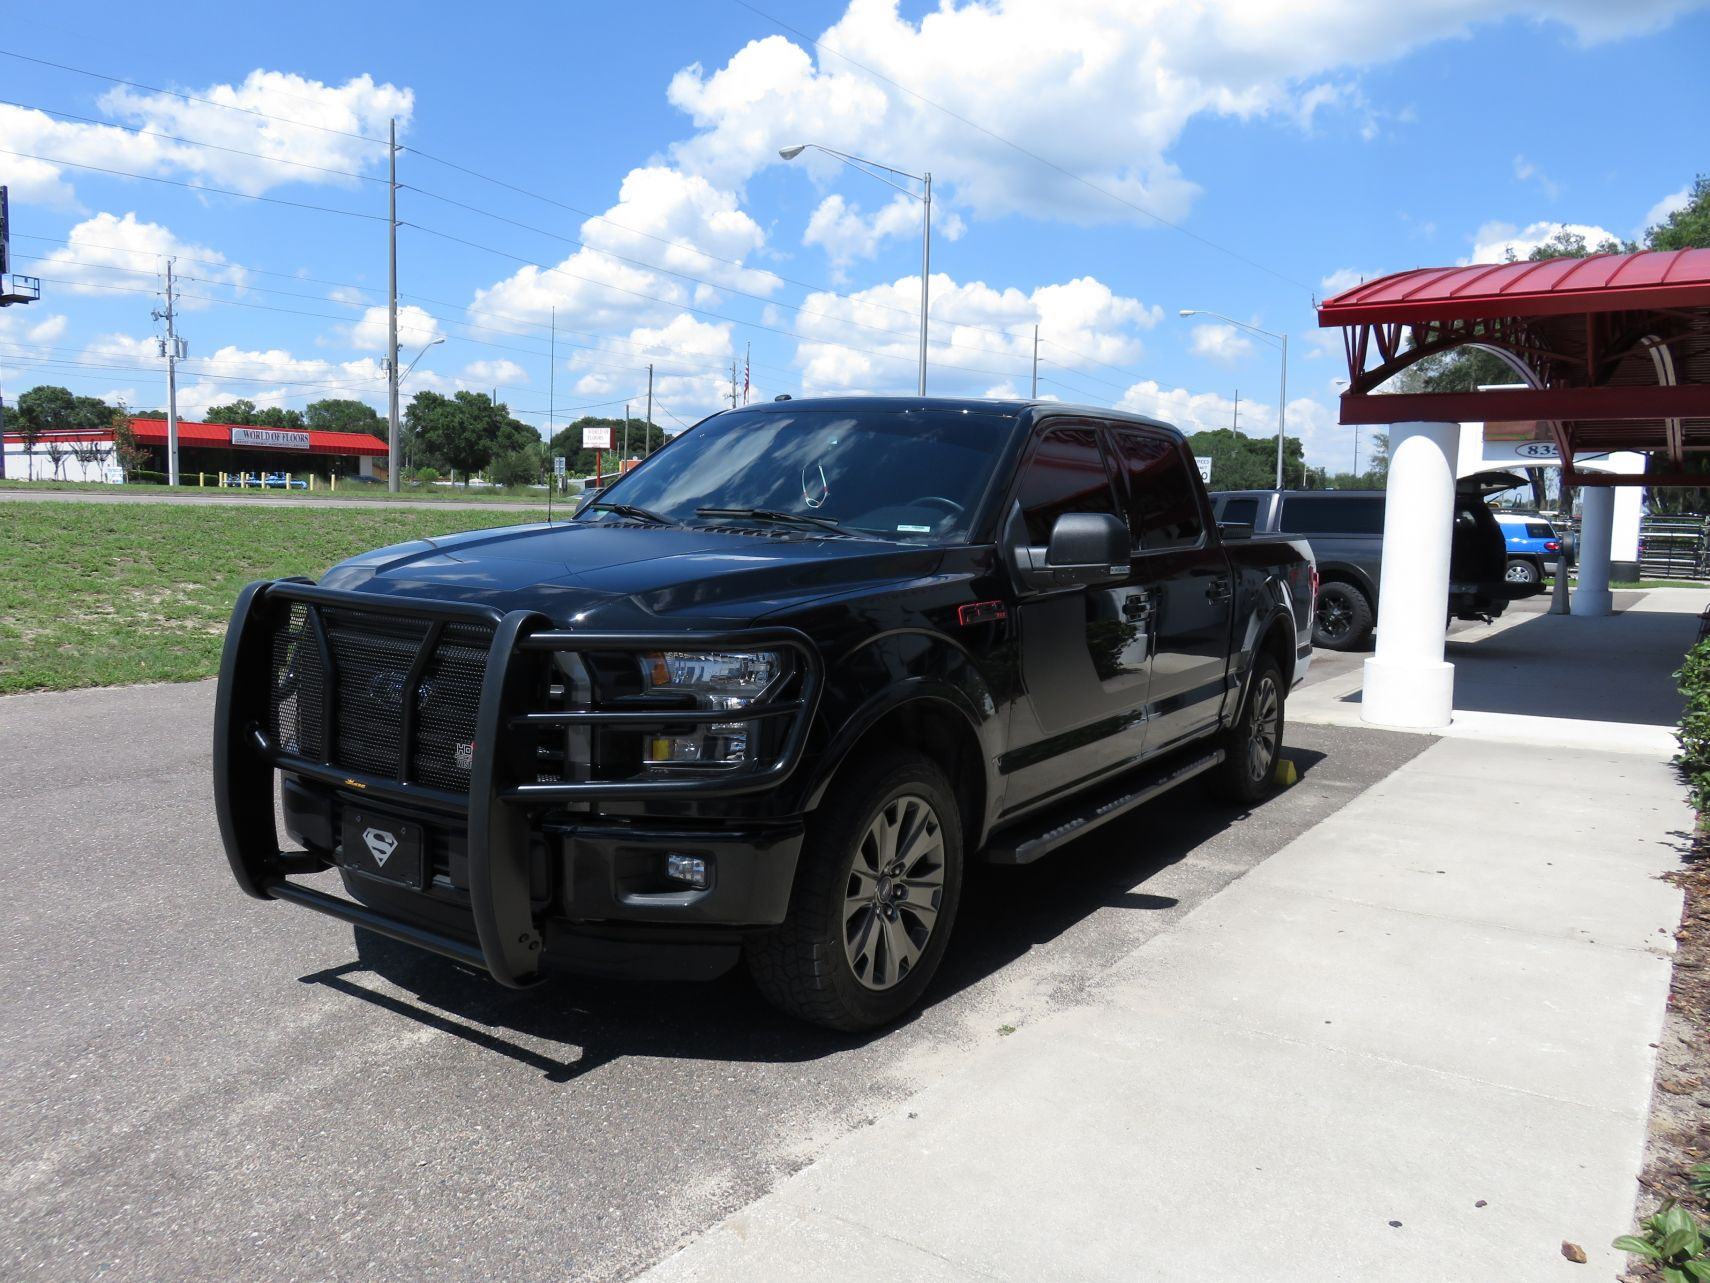 Blacked Out 2017 Ford F150 With Grille Guard Topperking